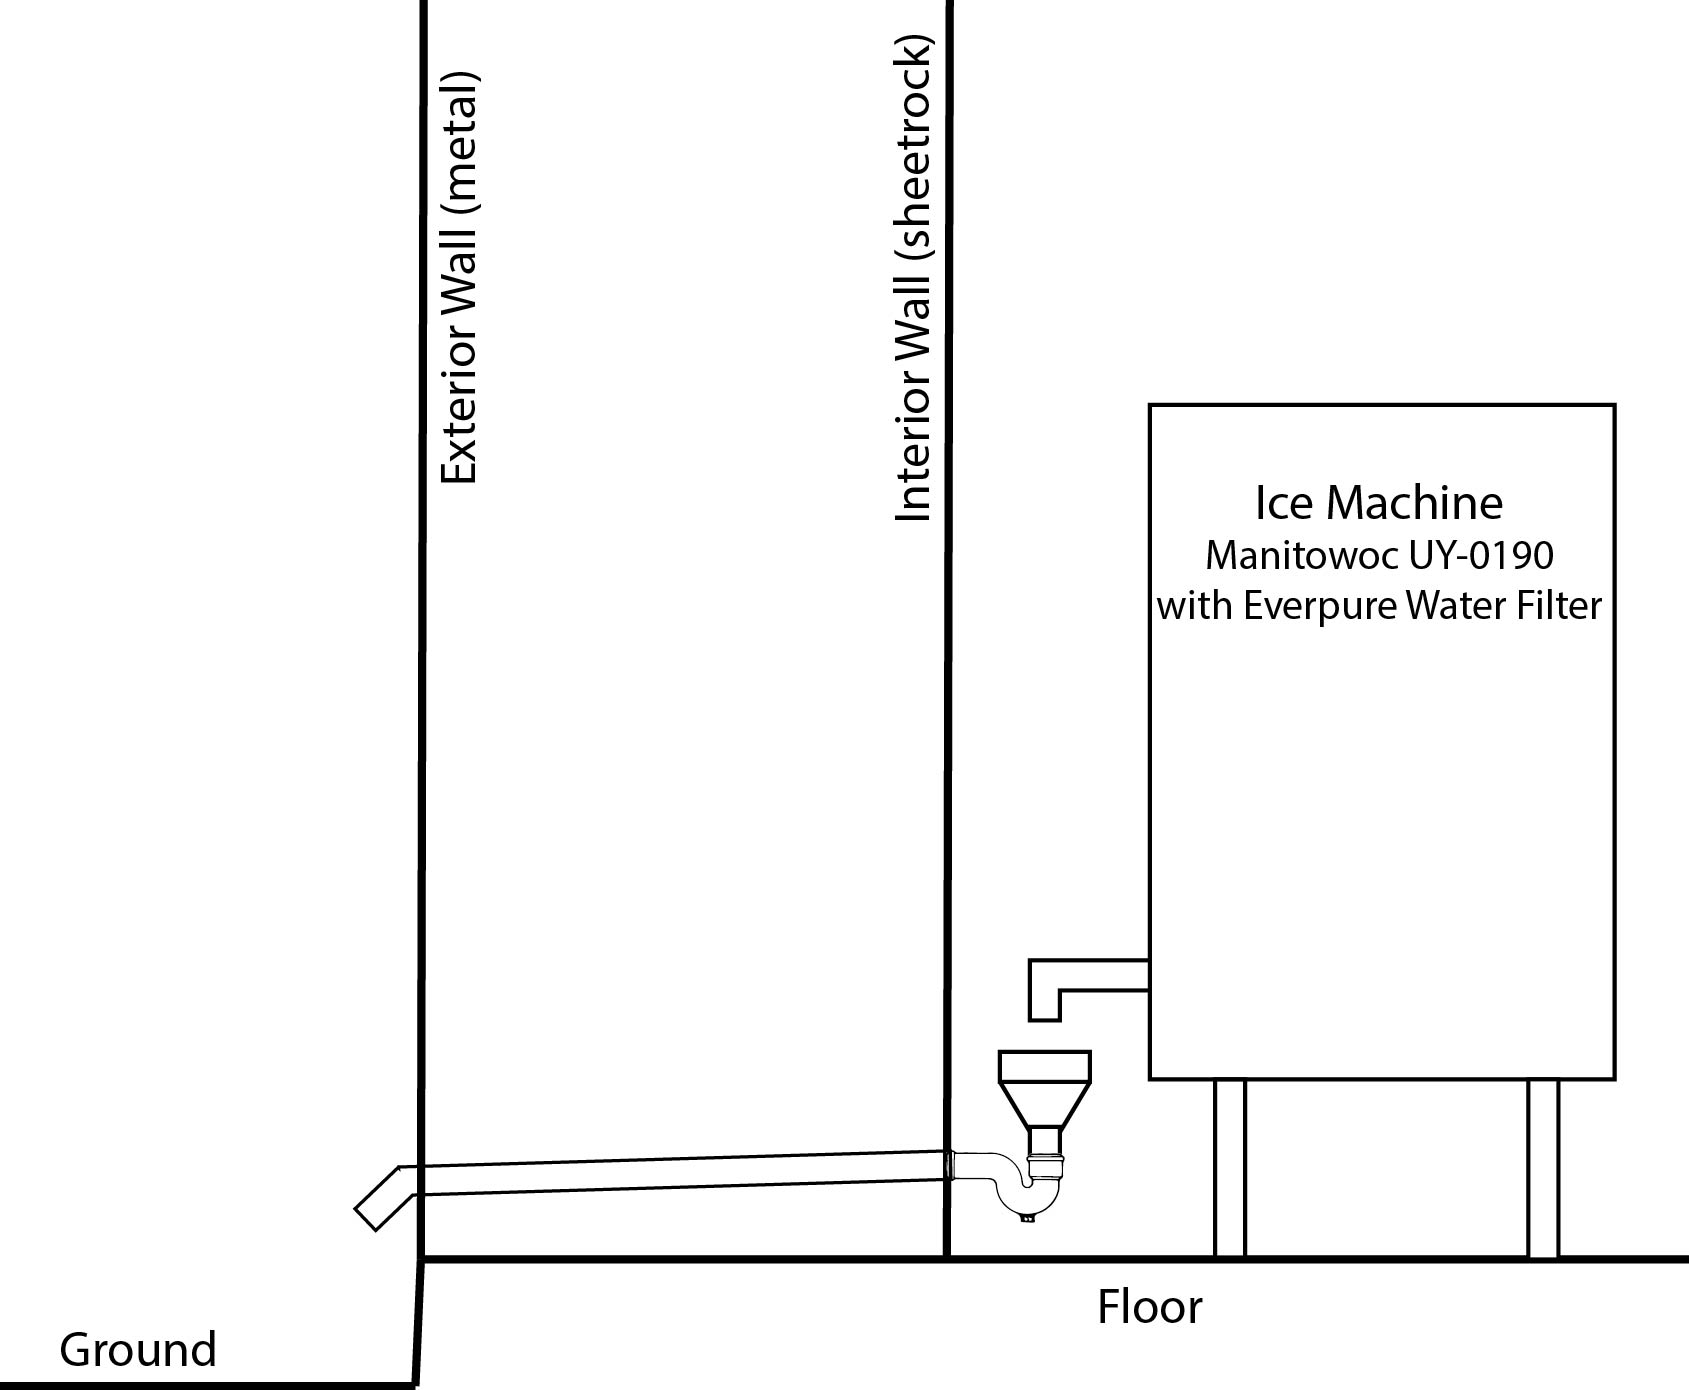 Plumbing for an Ice Machine-drainageplumbing.jpg